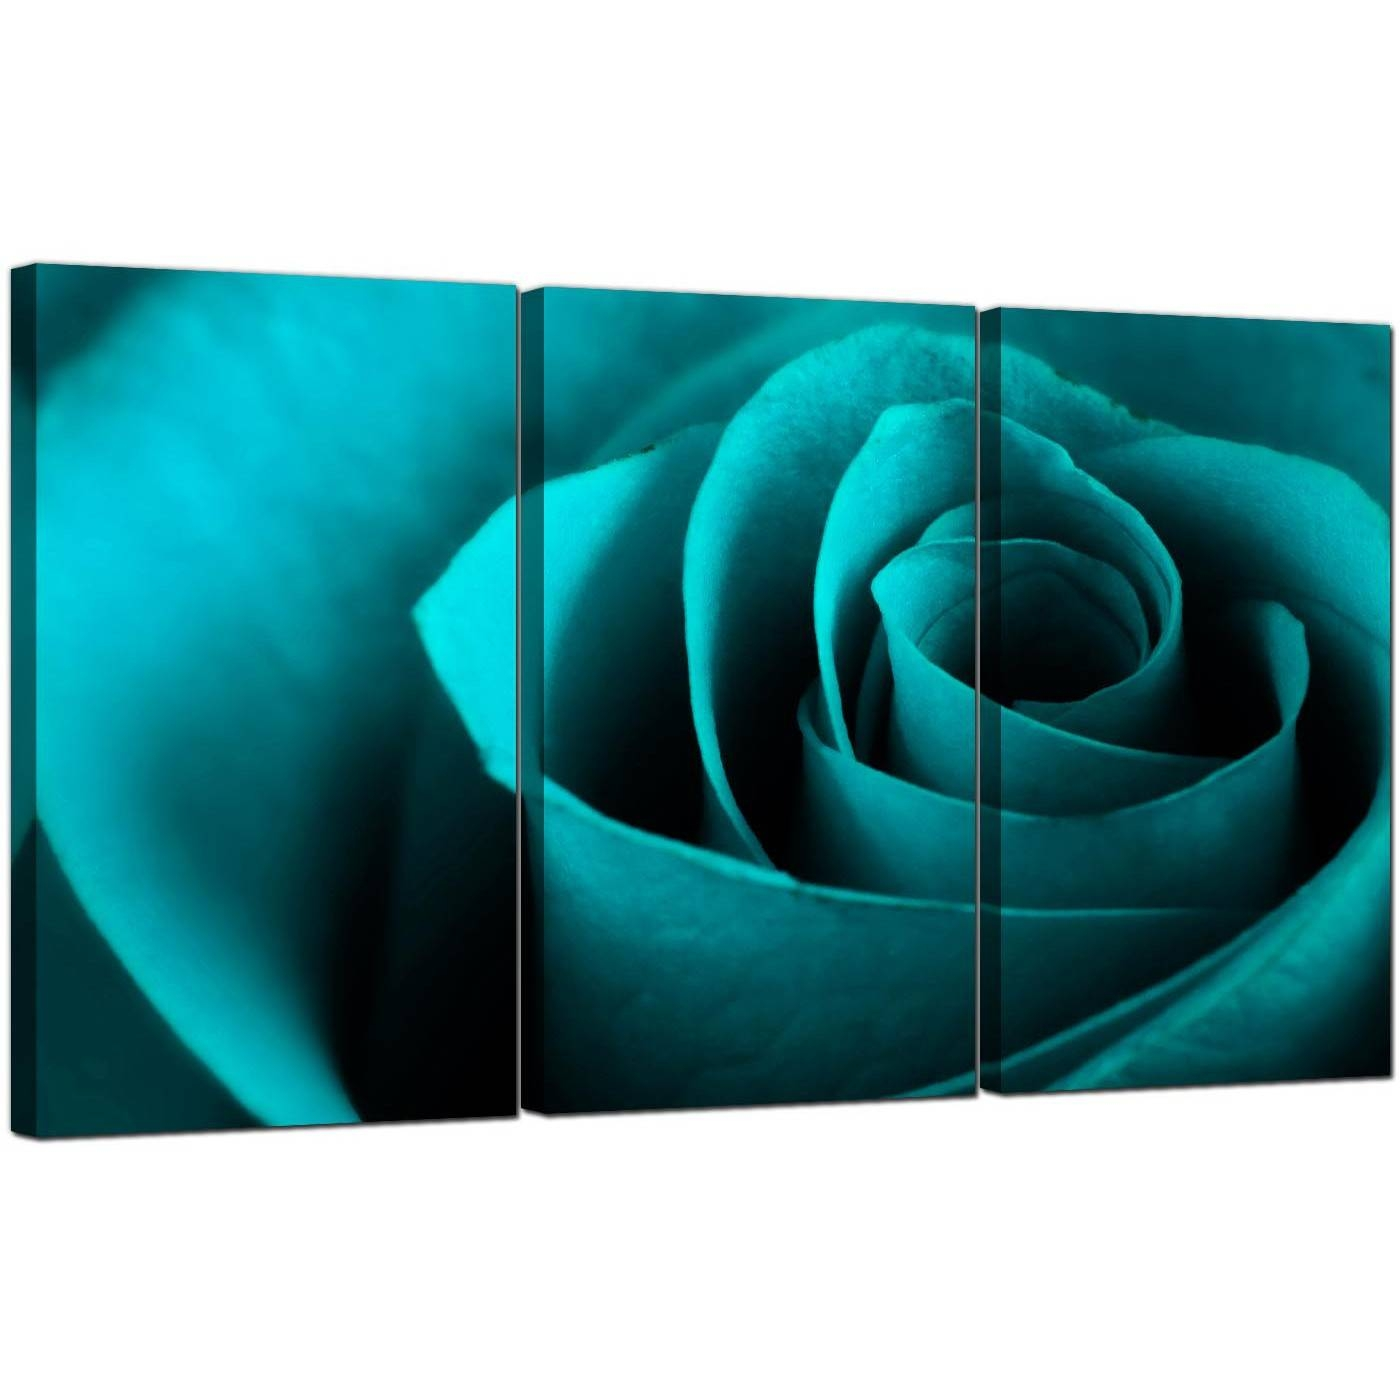 Rose Canvas Art Set Of 3 For Your Living Room With Best And Newest Rose Canvas Wall Art (View 12 of 20)